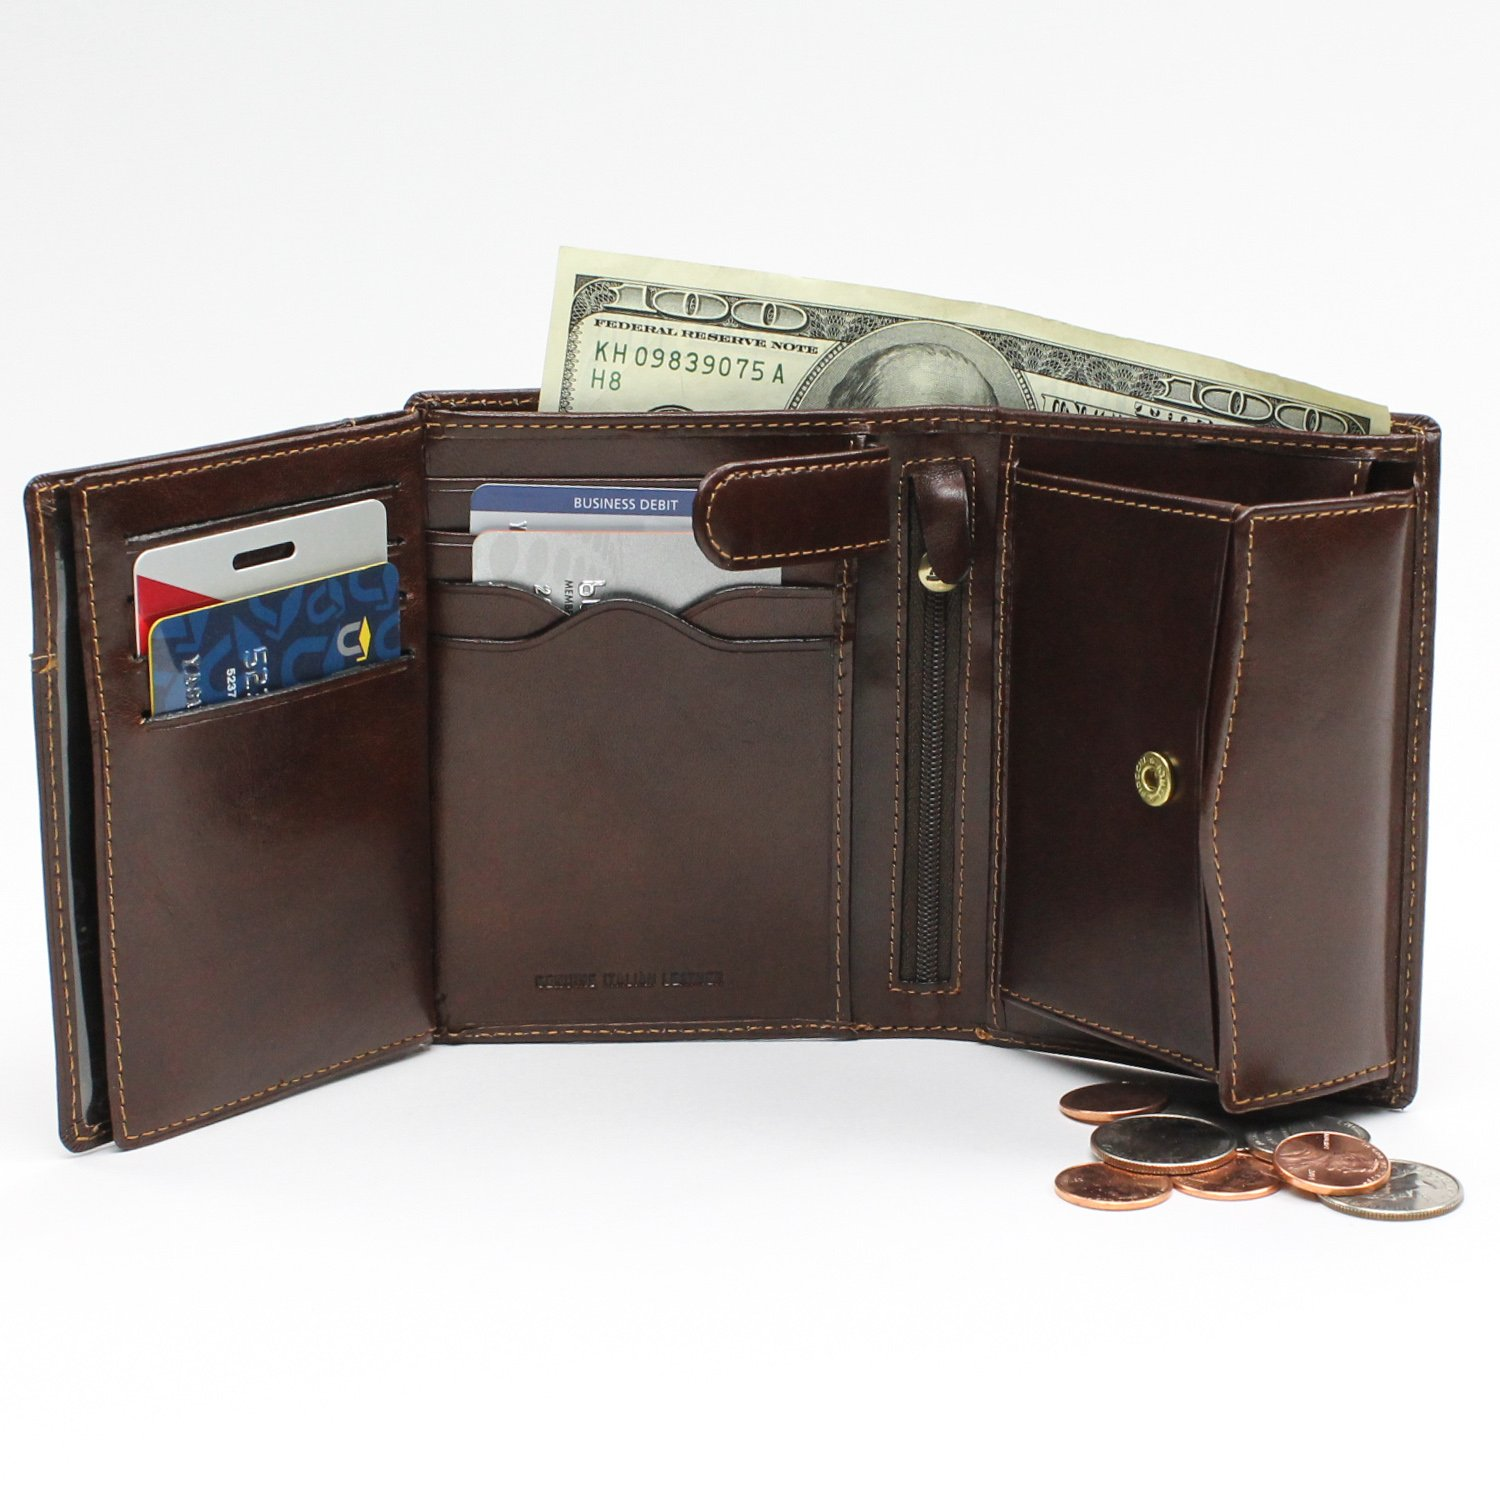 Tony Perotti Italian Leather Trifold Wallet With Id Window and Coin Pouch,cognac Tri-Fold Wallet, Cognac